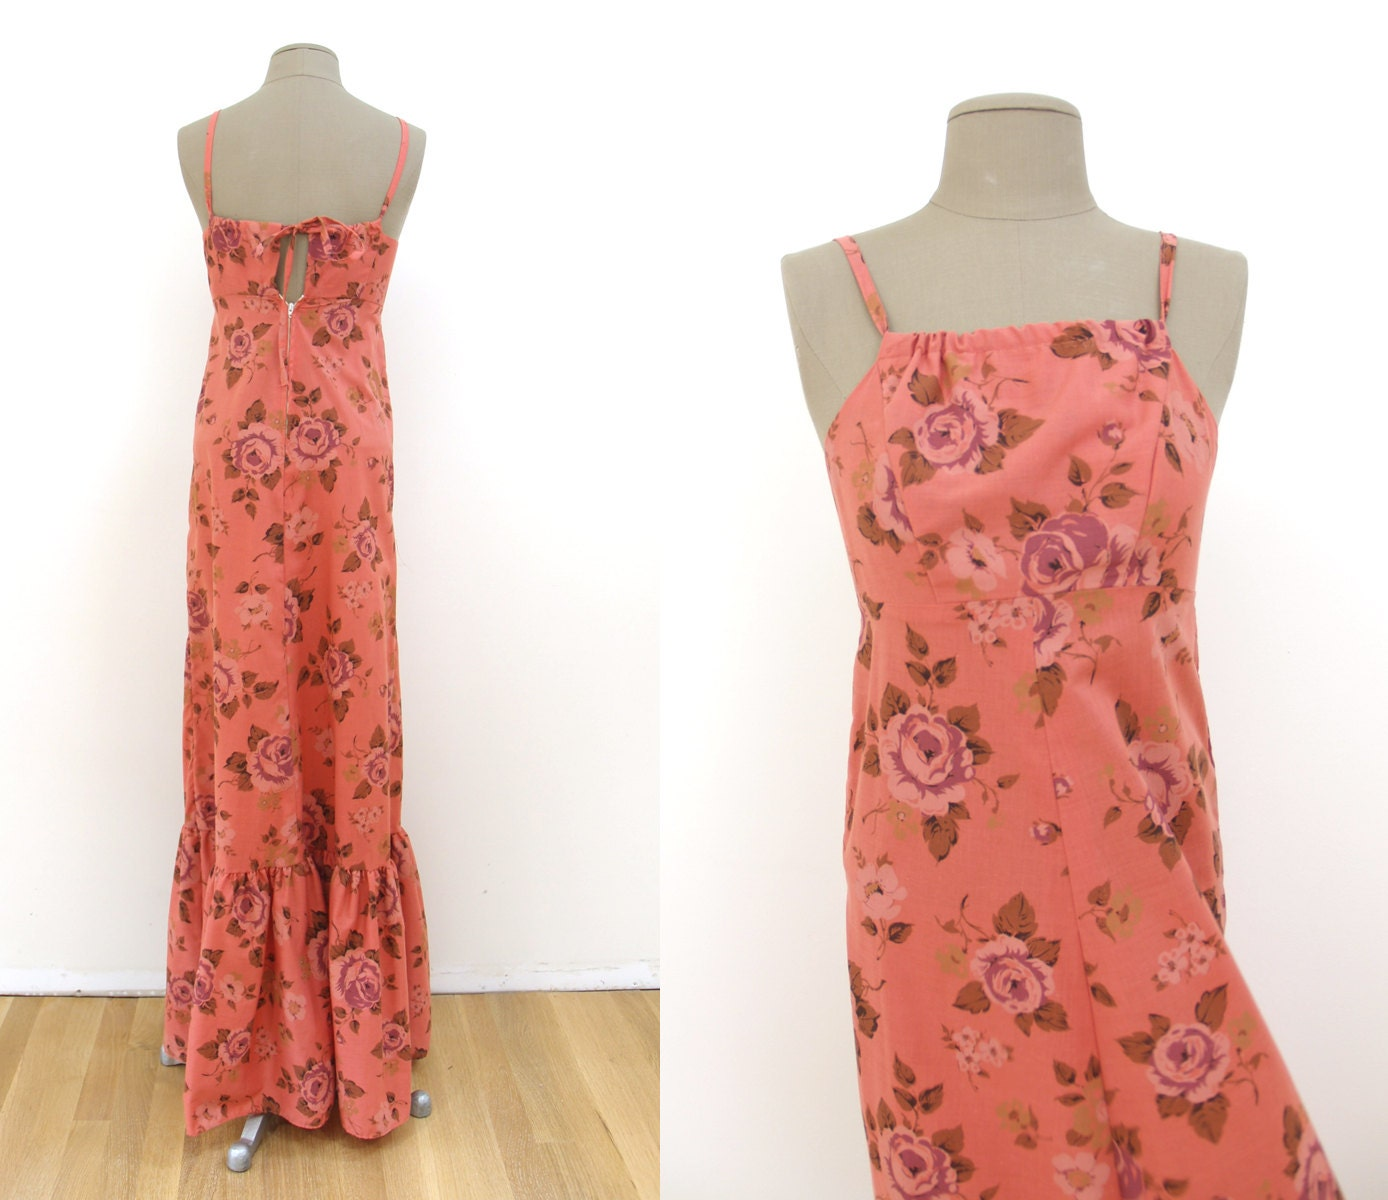 Vintage 70s rosado Floral Maxi Dress XS XS XS TALL    Hawaiian rose sundress 1970s tamaño extra small 1e7a1a